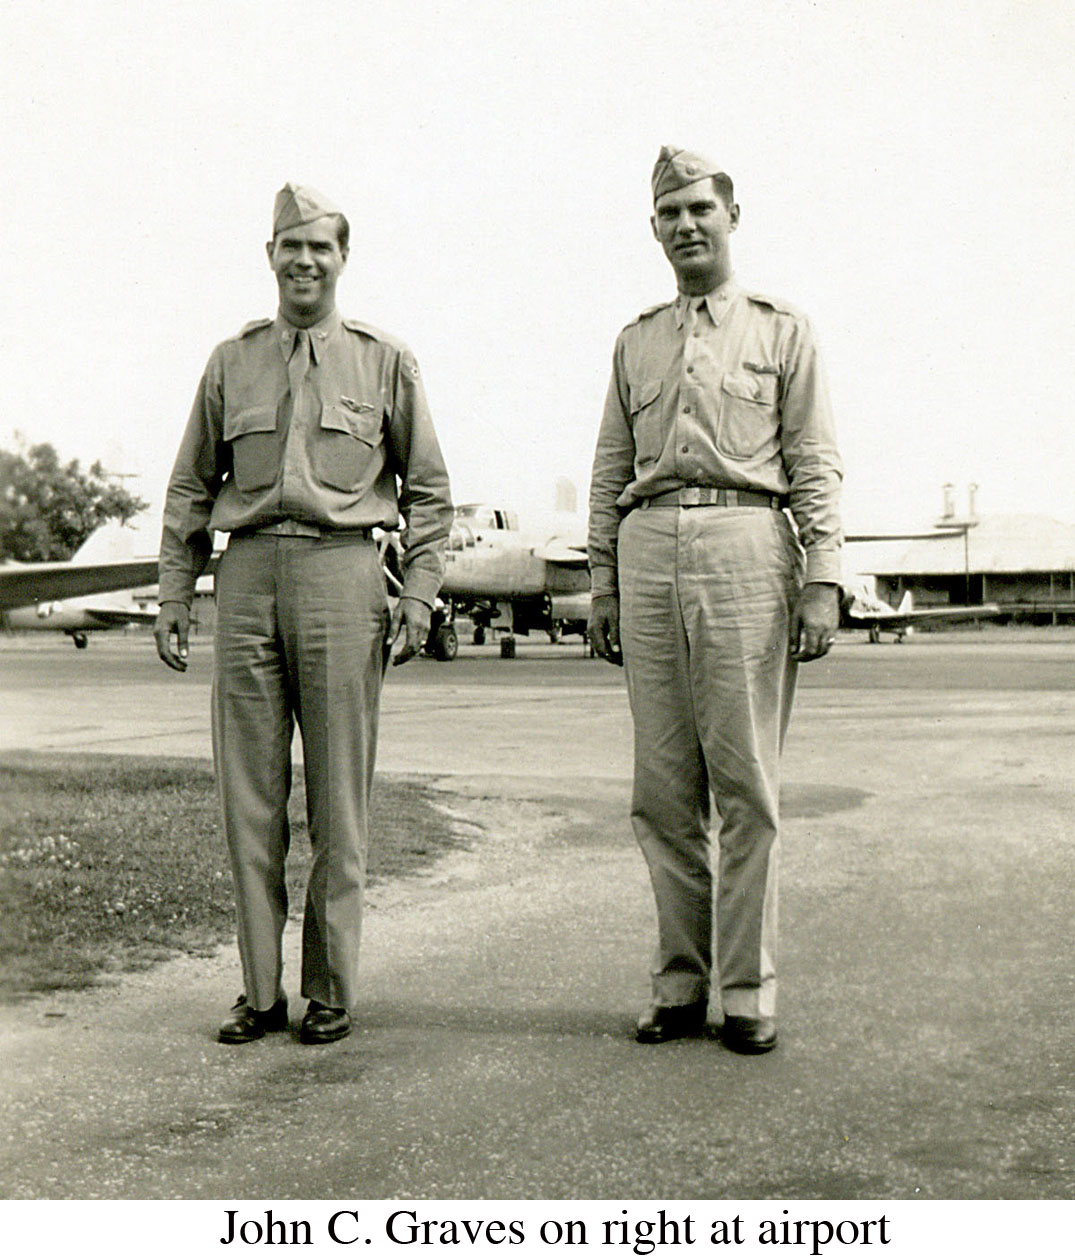 John C Graves on right at airport